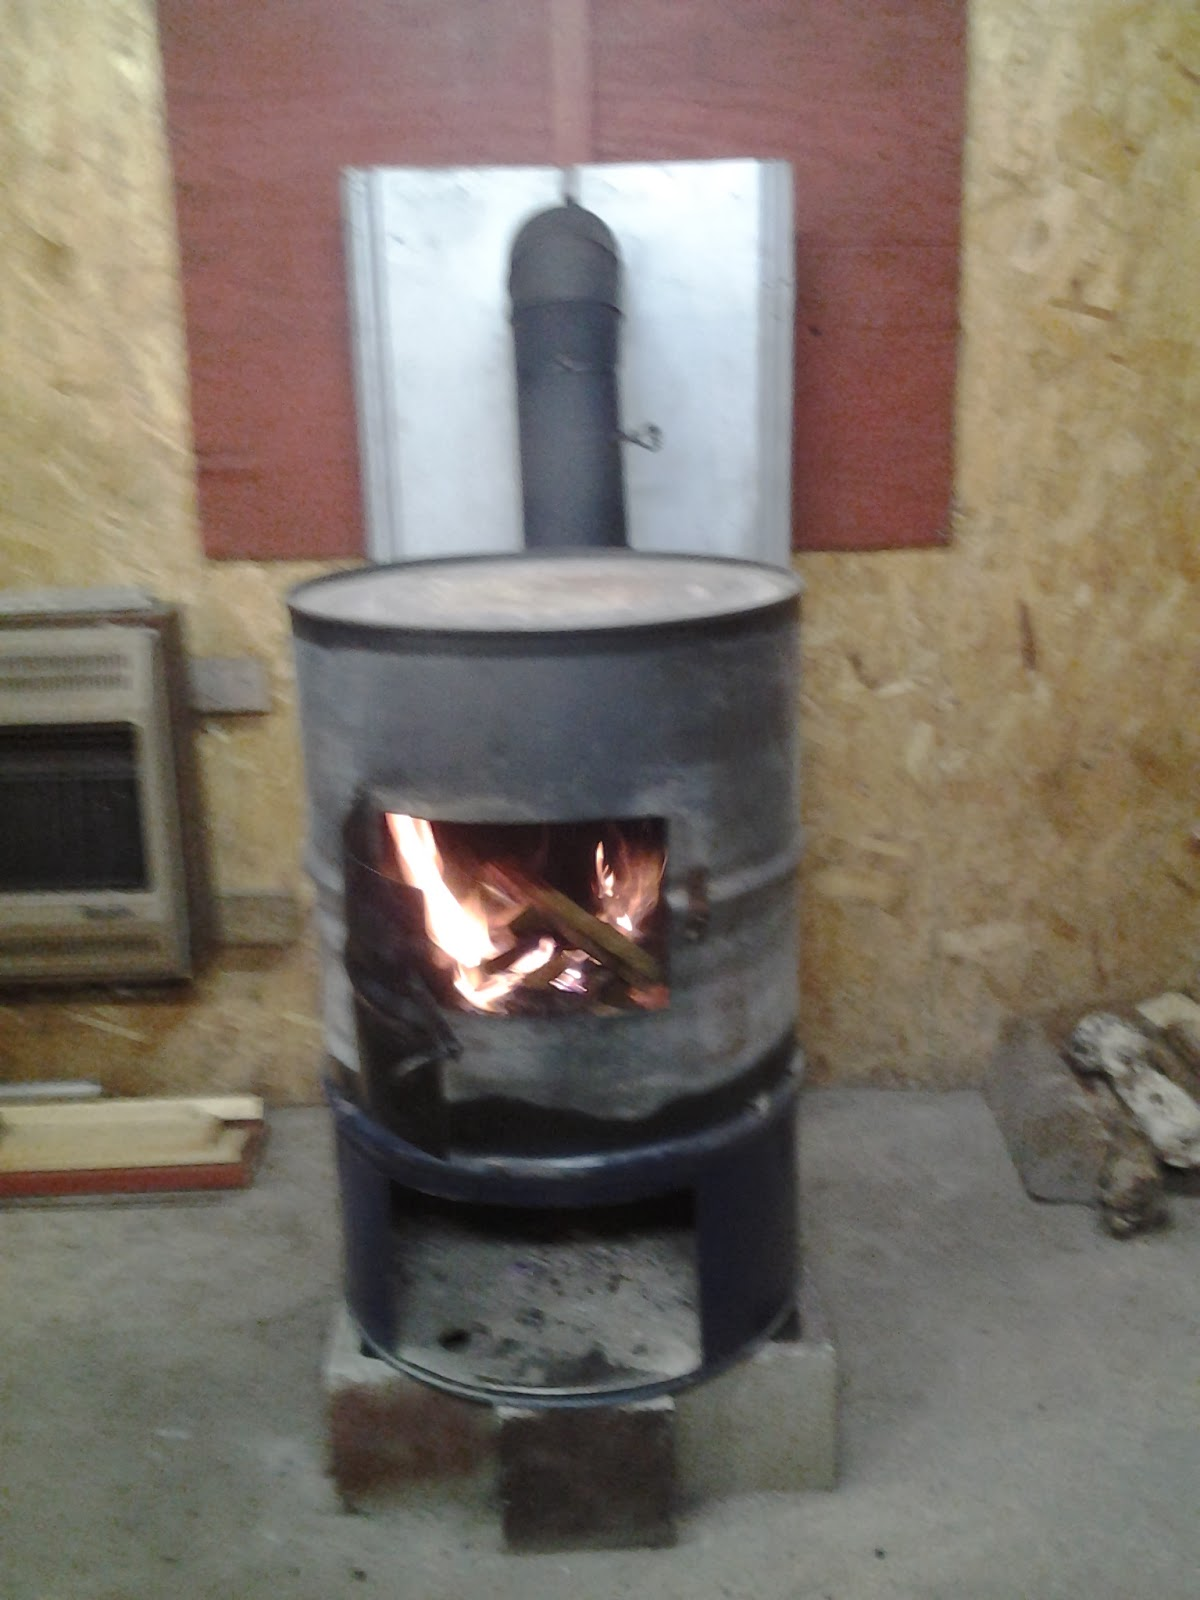 55 Gallon Drum Heater Wood Stove 1200x1600 · 55 Gallon Drum Rocket Stove  Related Keywords & Suggestions 600x800 - 55 Gallon Drum Stove Pictures To Pin On Pinterest - PinsDaddy